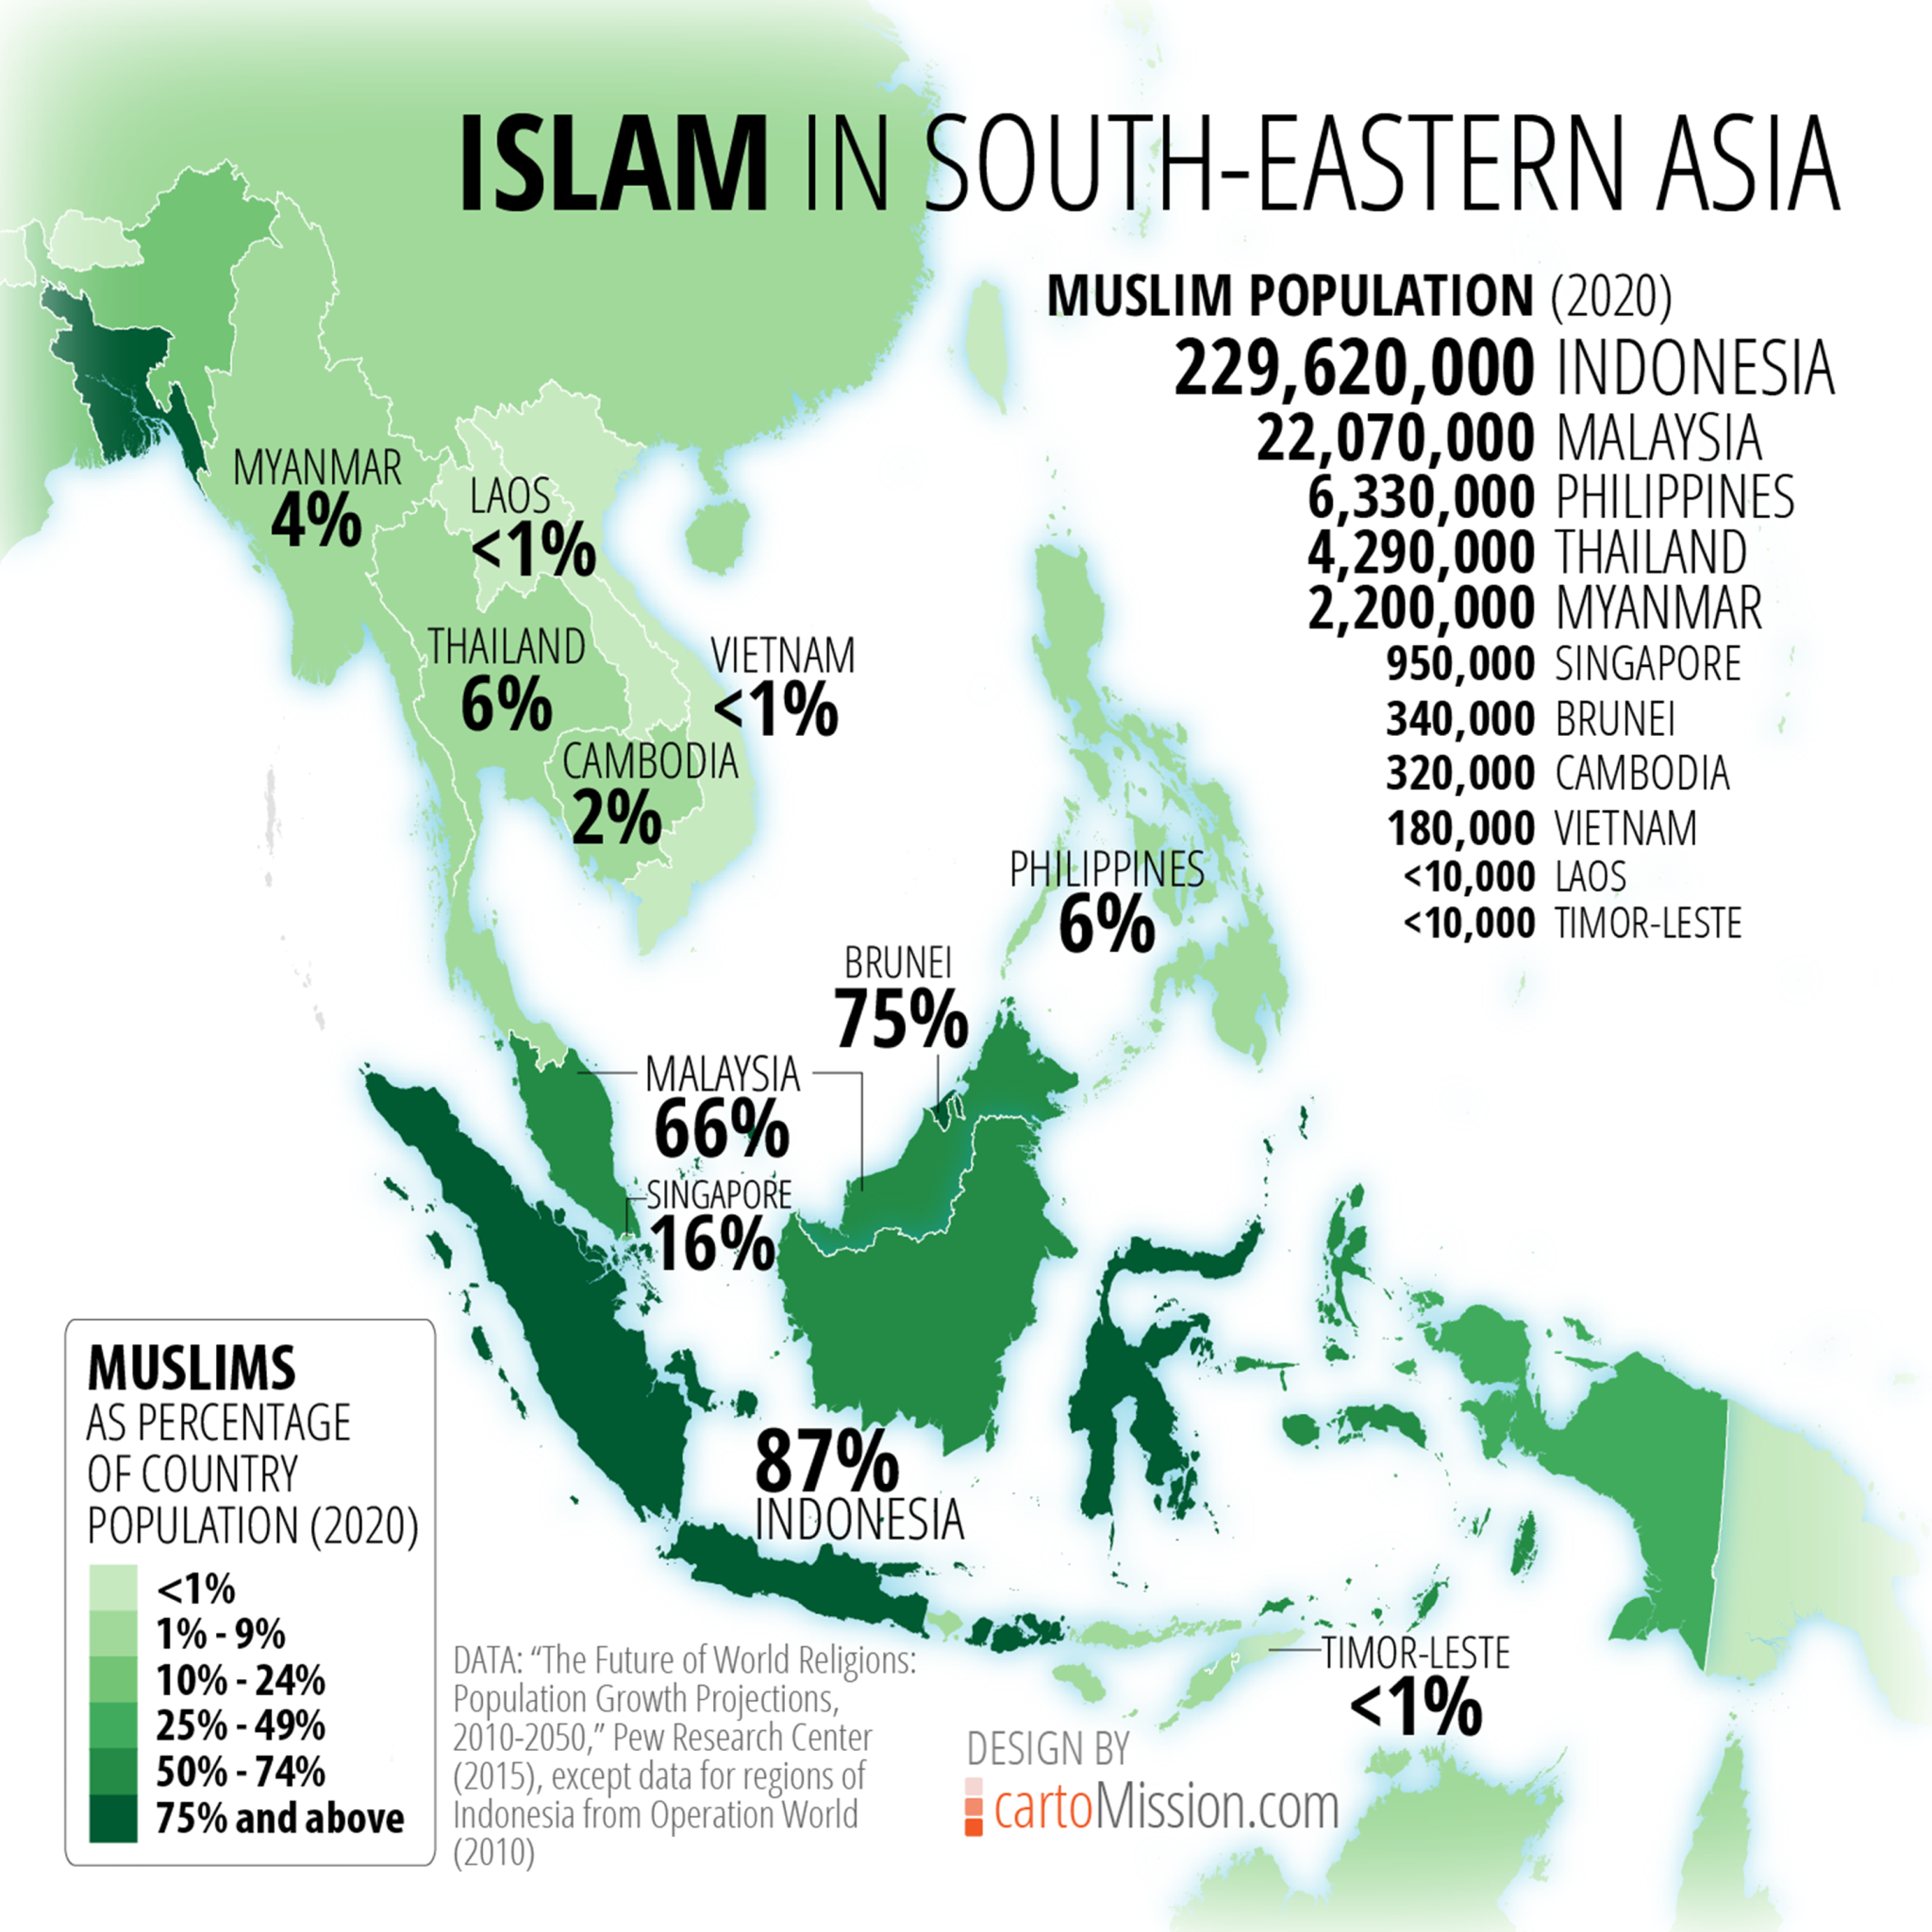 Among southeast asian countries